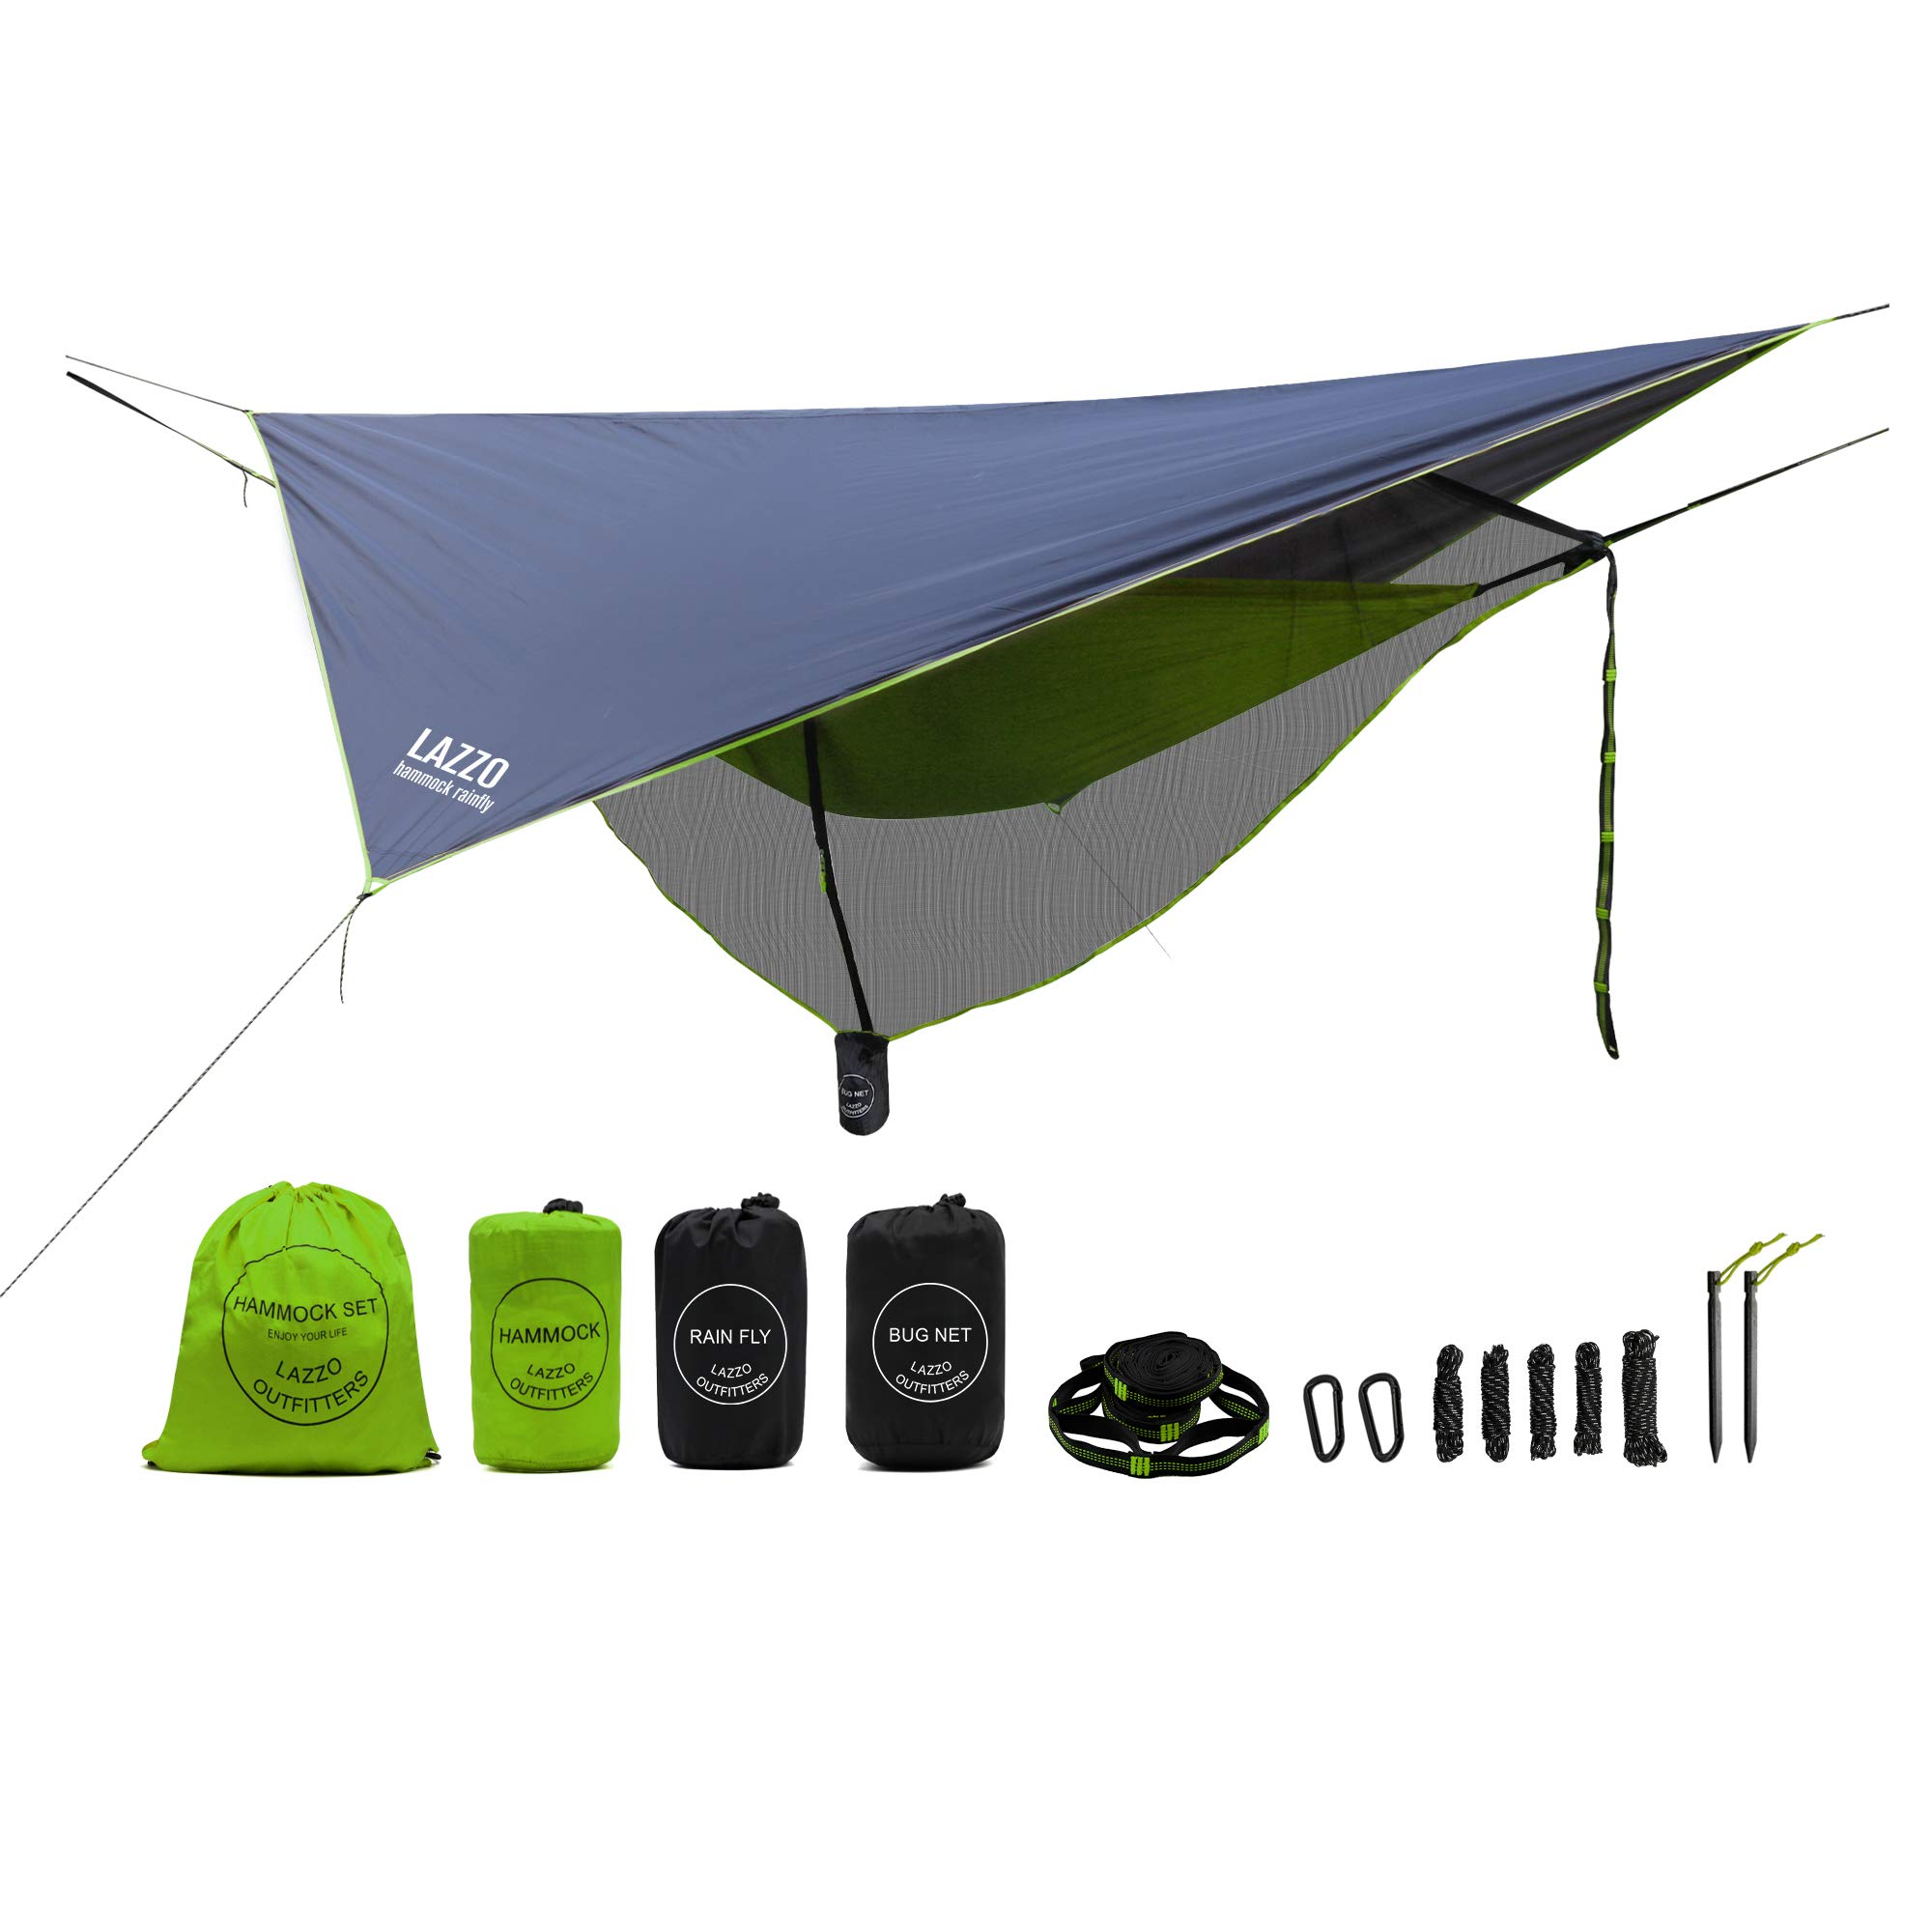 LAZZO Camping Hammock Set All-Inclusive,Single Hammock,Bug Net,Tarp,Suspension,Guyline,Stakes and Backpack,Perfect for Backpacking,Camping,Hiking & Yard (Green, 9.2) by LAZZO